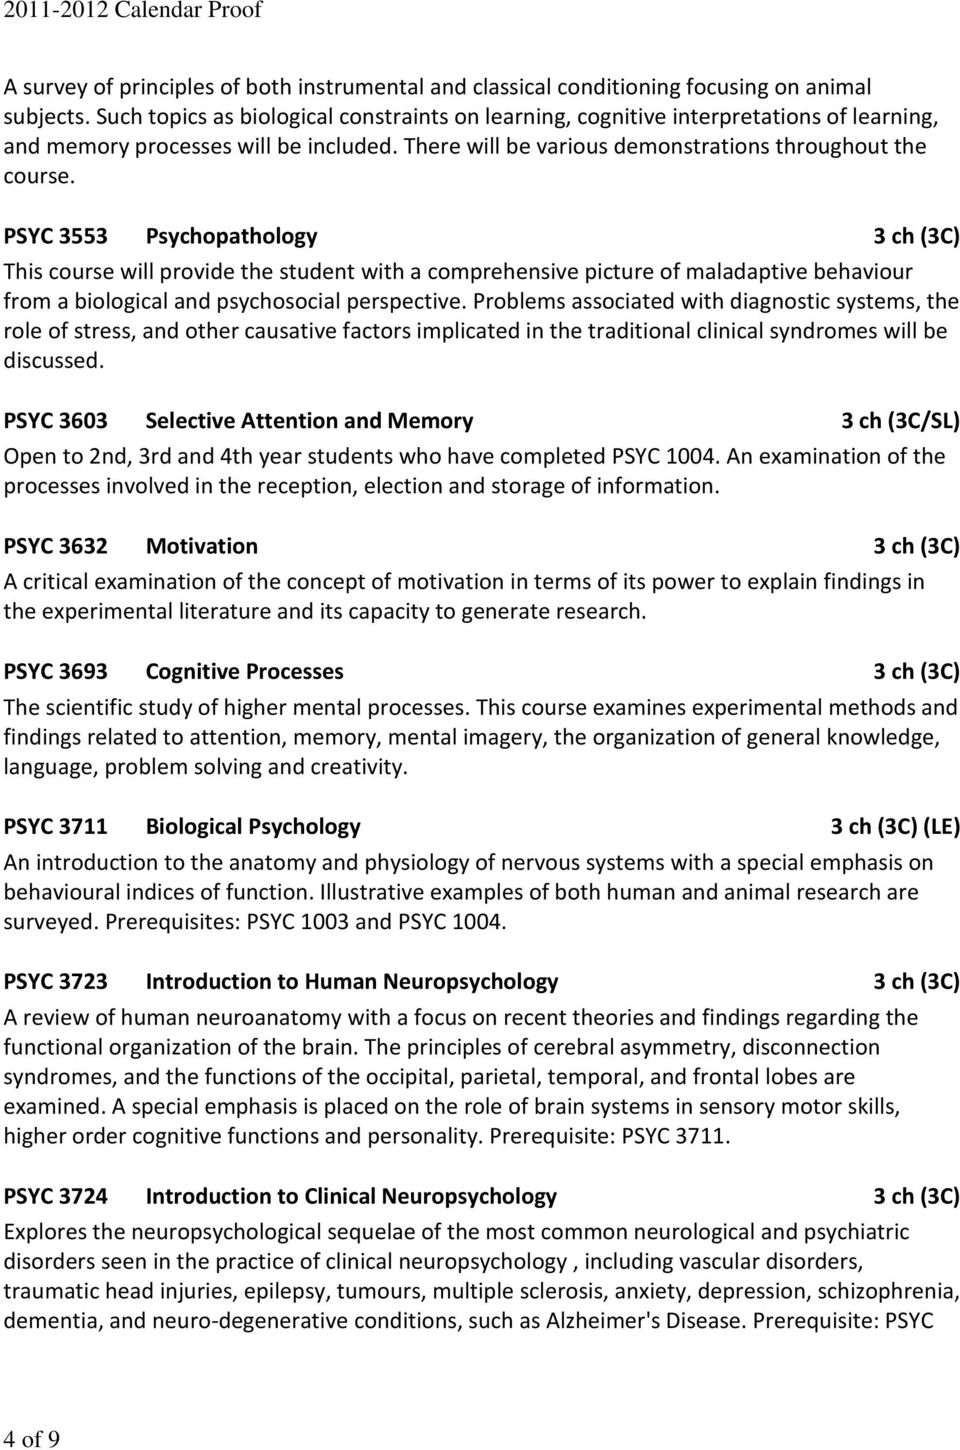 PSYC 3553 Psychopathology 3 ch (3C) This course will provide the student with a comprehensive picture of maladaptive behaviour from a biological and psychosocial perspective.